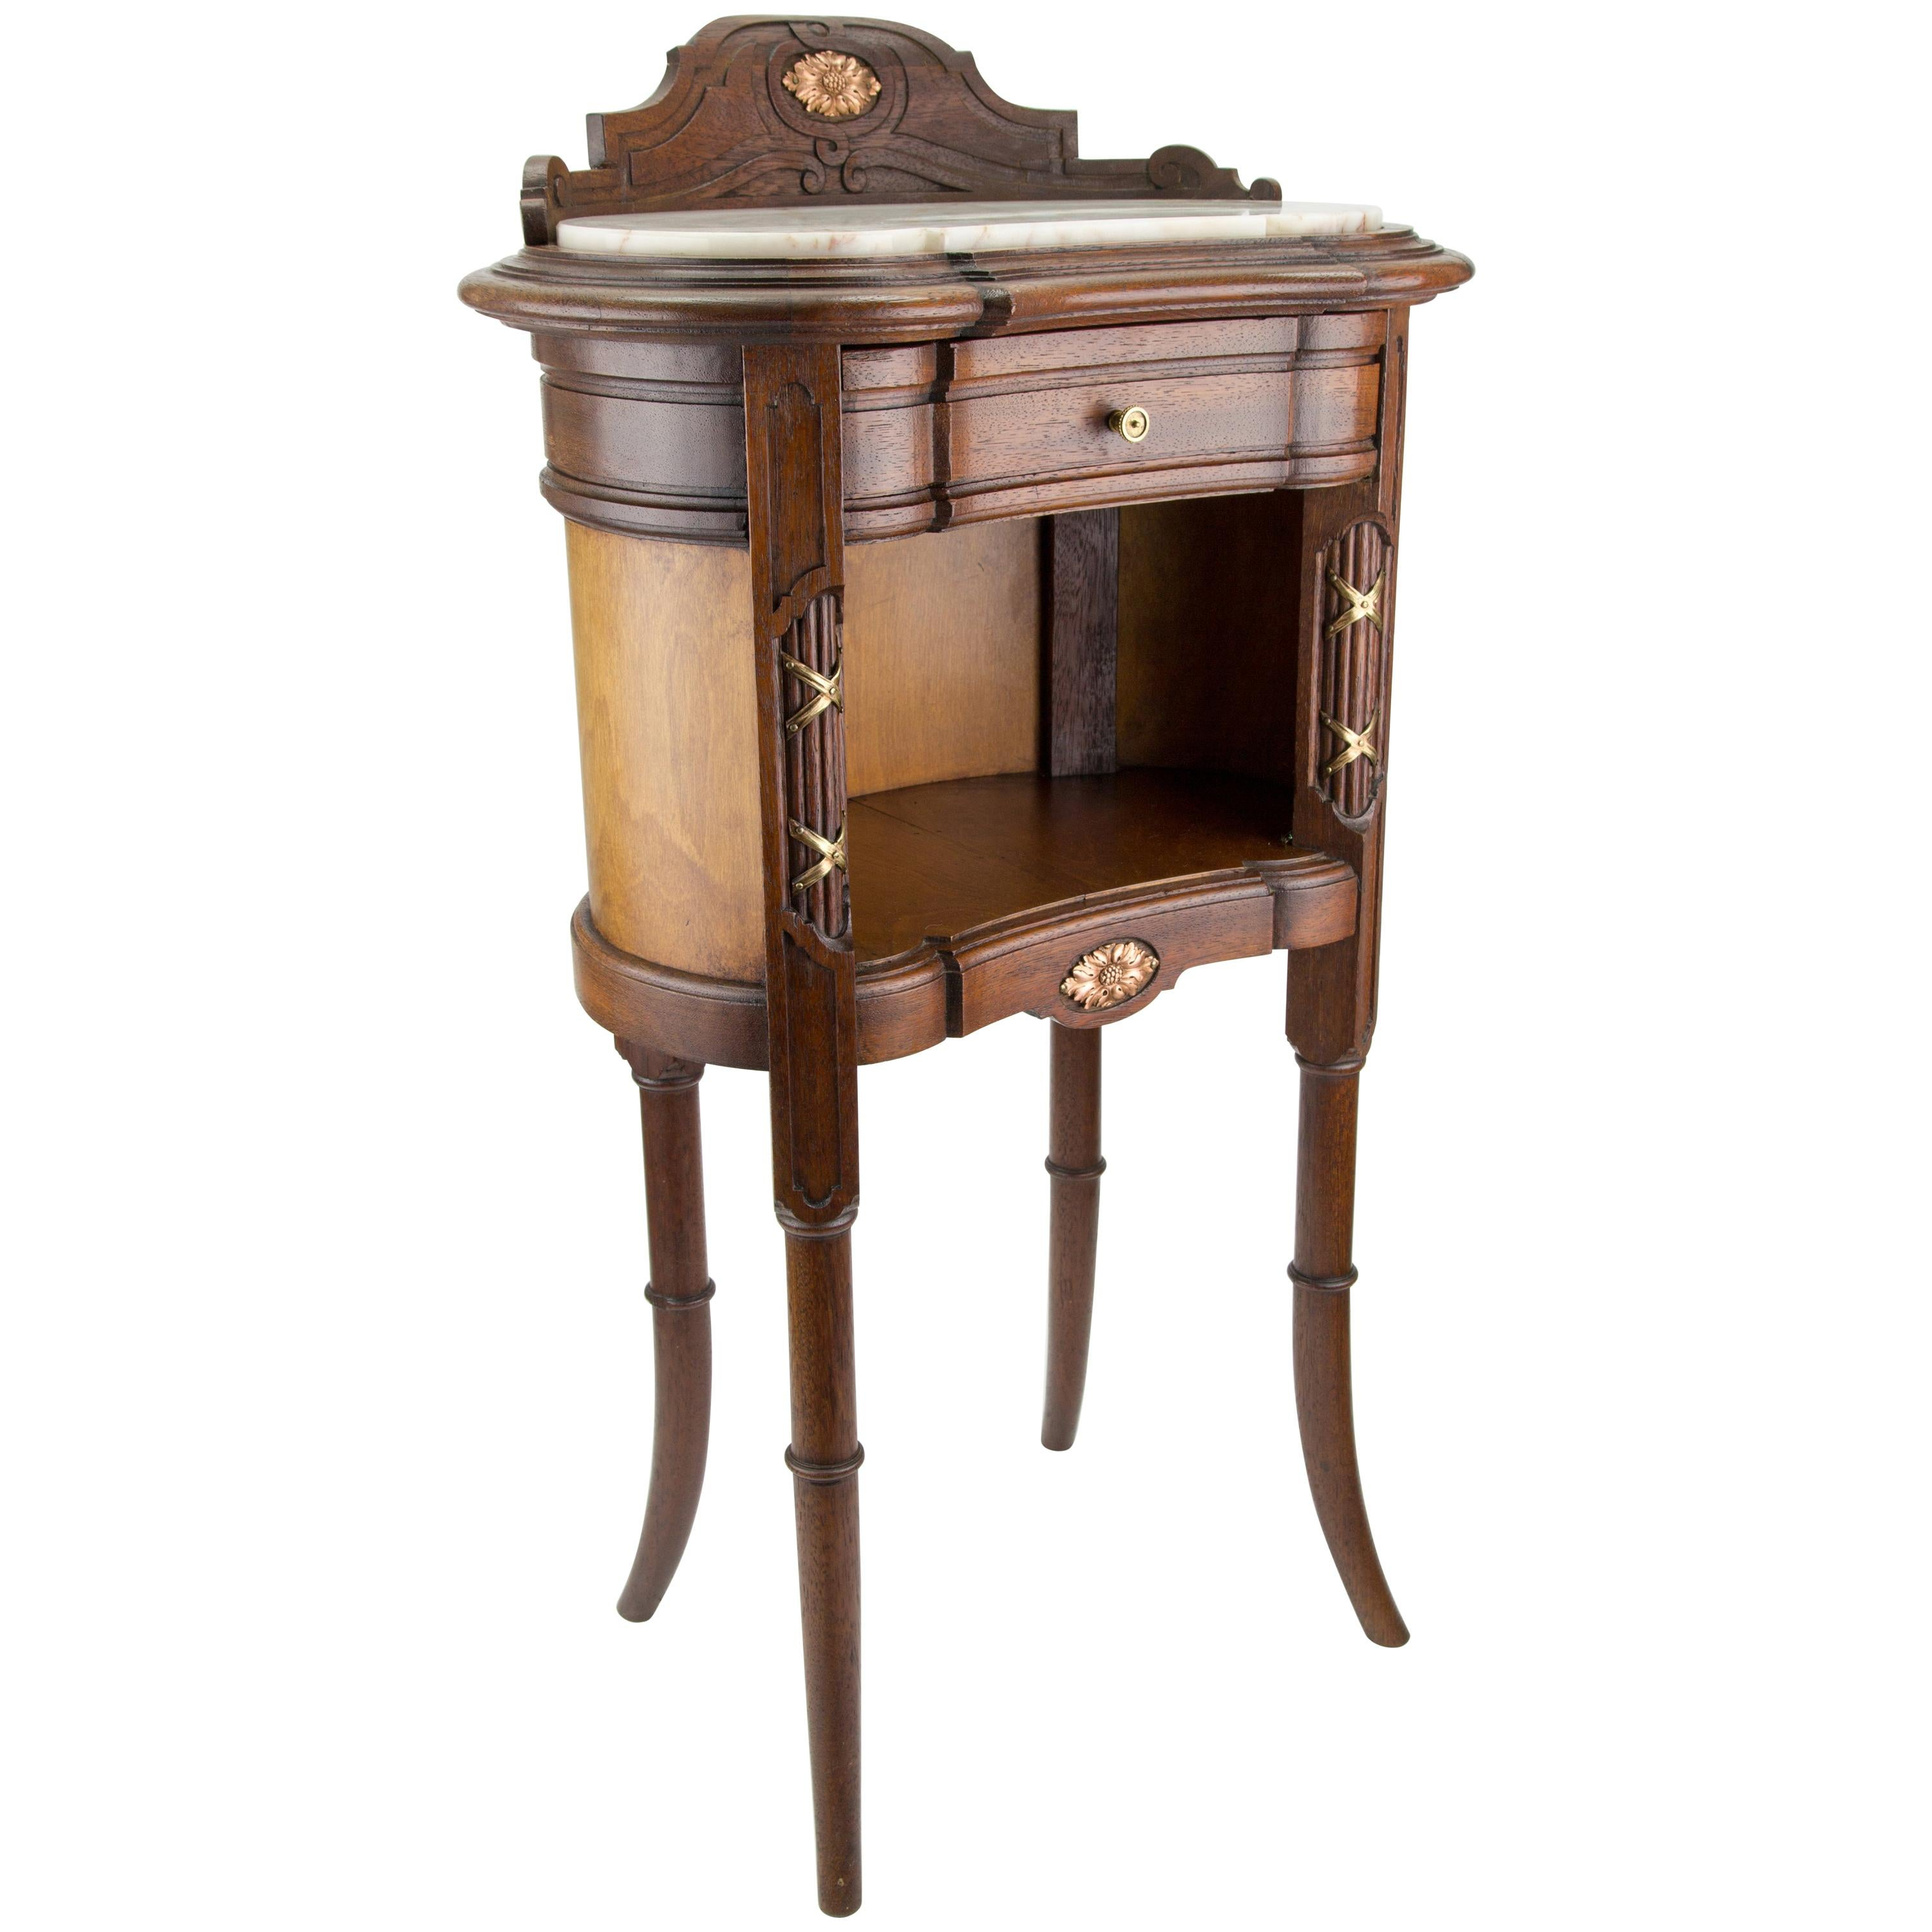 French Louis XVI Style Kidney Shaped Nightstand with Marble Top and Brass Mounts